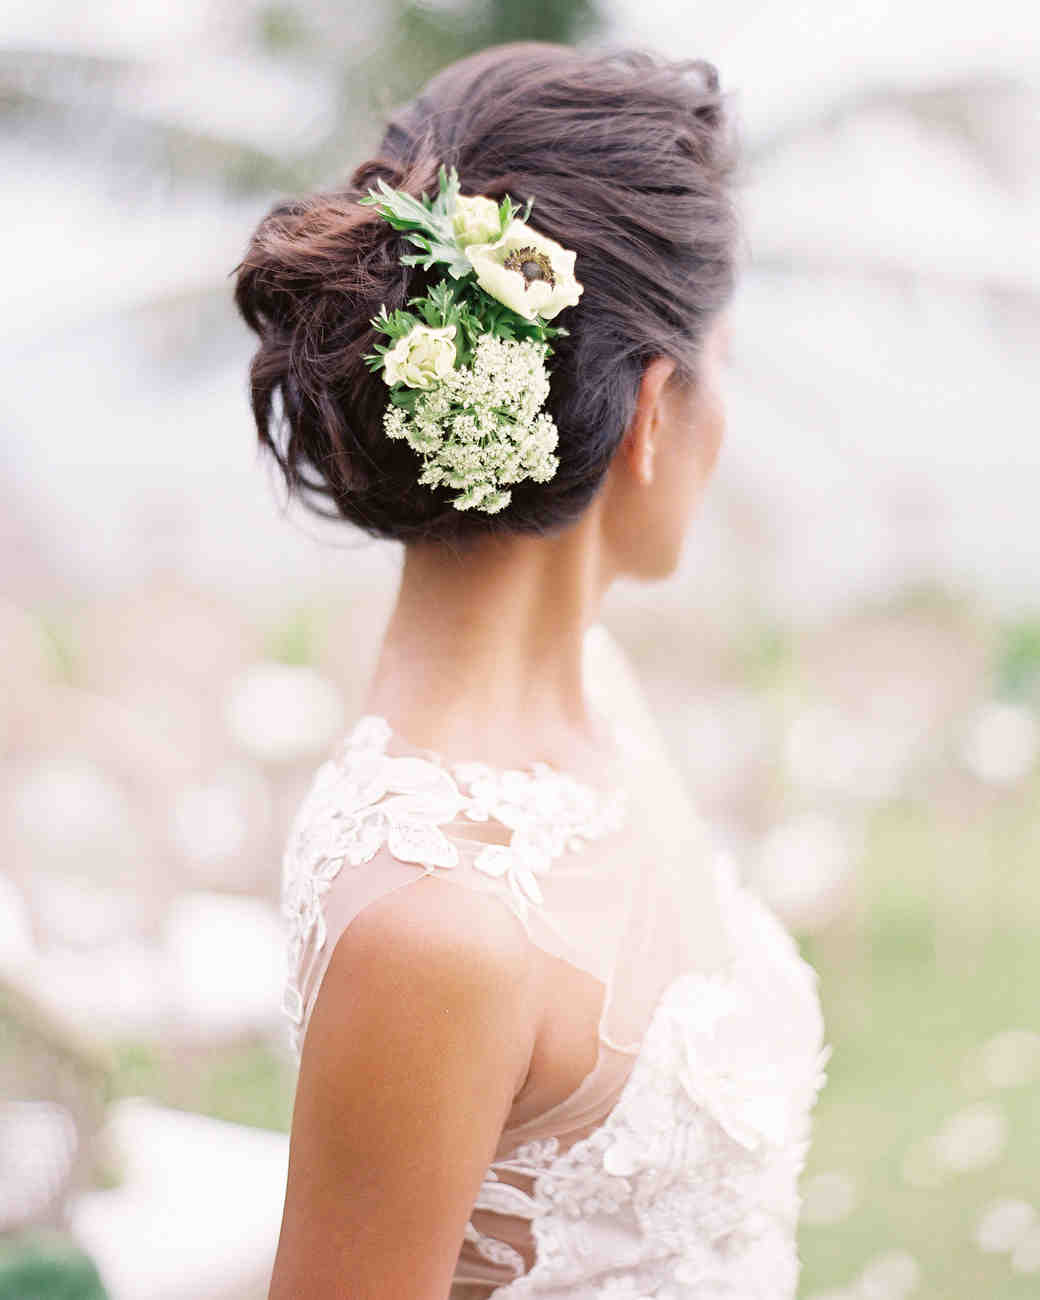 Wedding Hairstyle Photos: 20 Wedding Hairstyles With Flowers